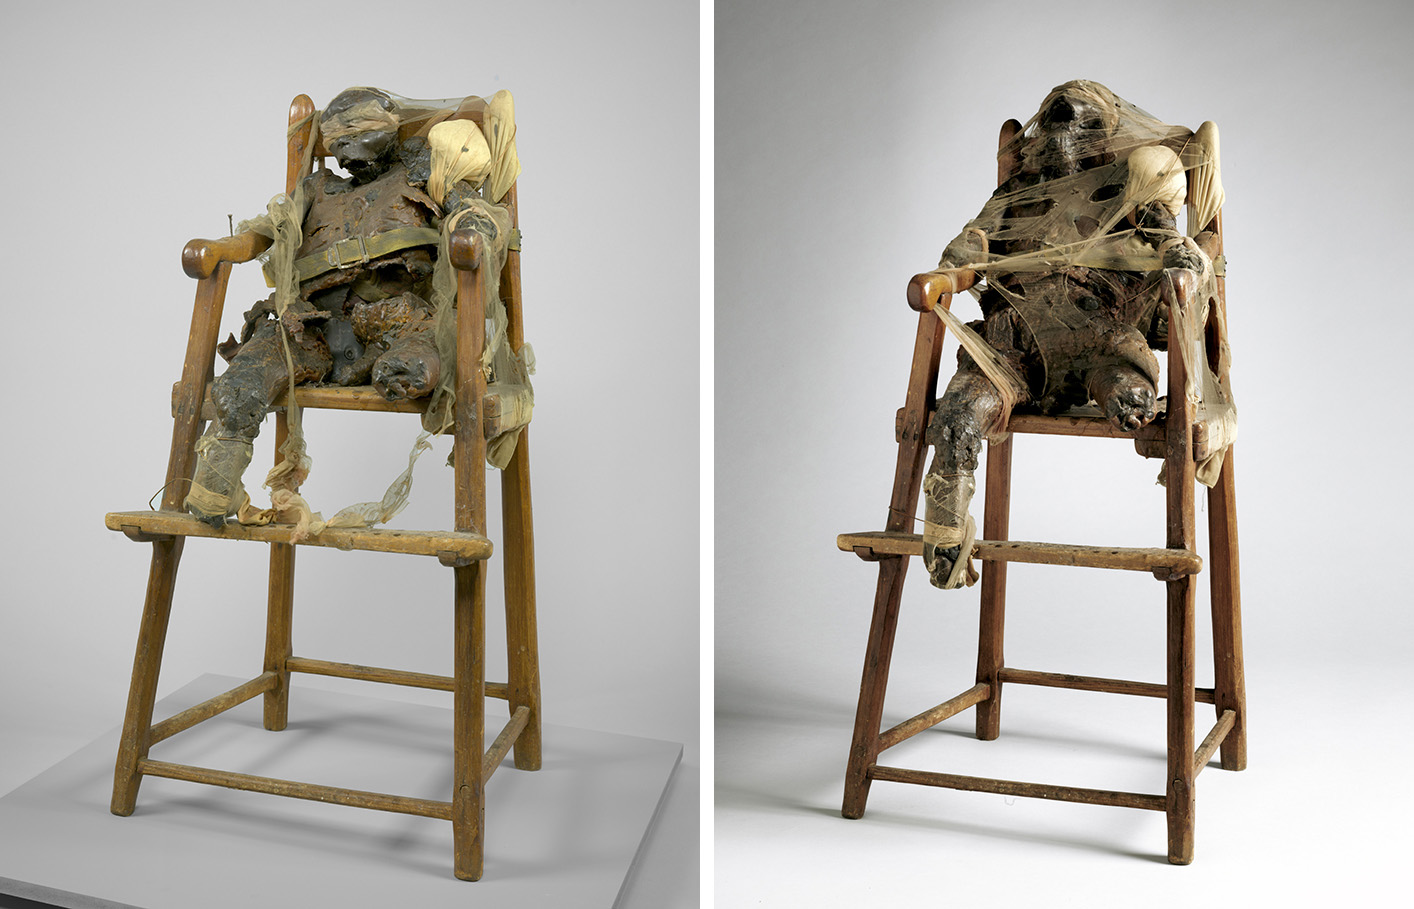 At left, 2015 photograph of CHILD prior to conservation treatment. At right, CHILD after treatment in January 2016. All images courtesy of MoMA, New York